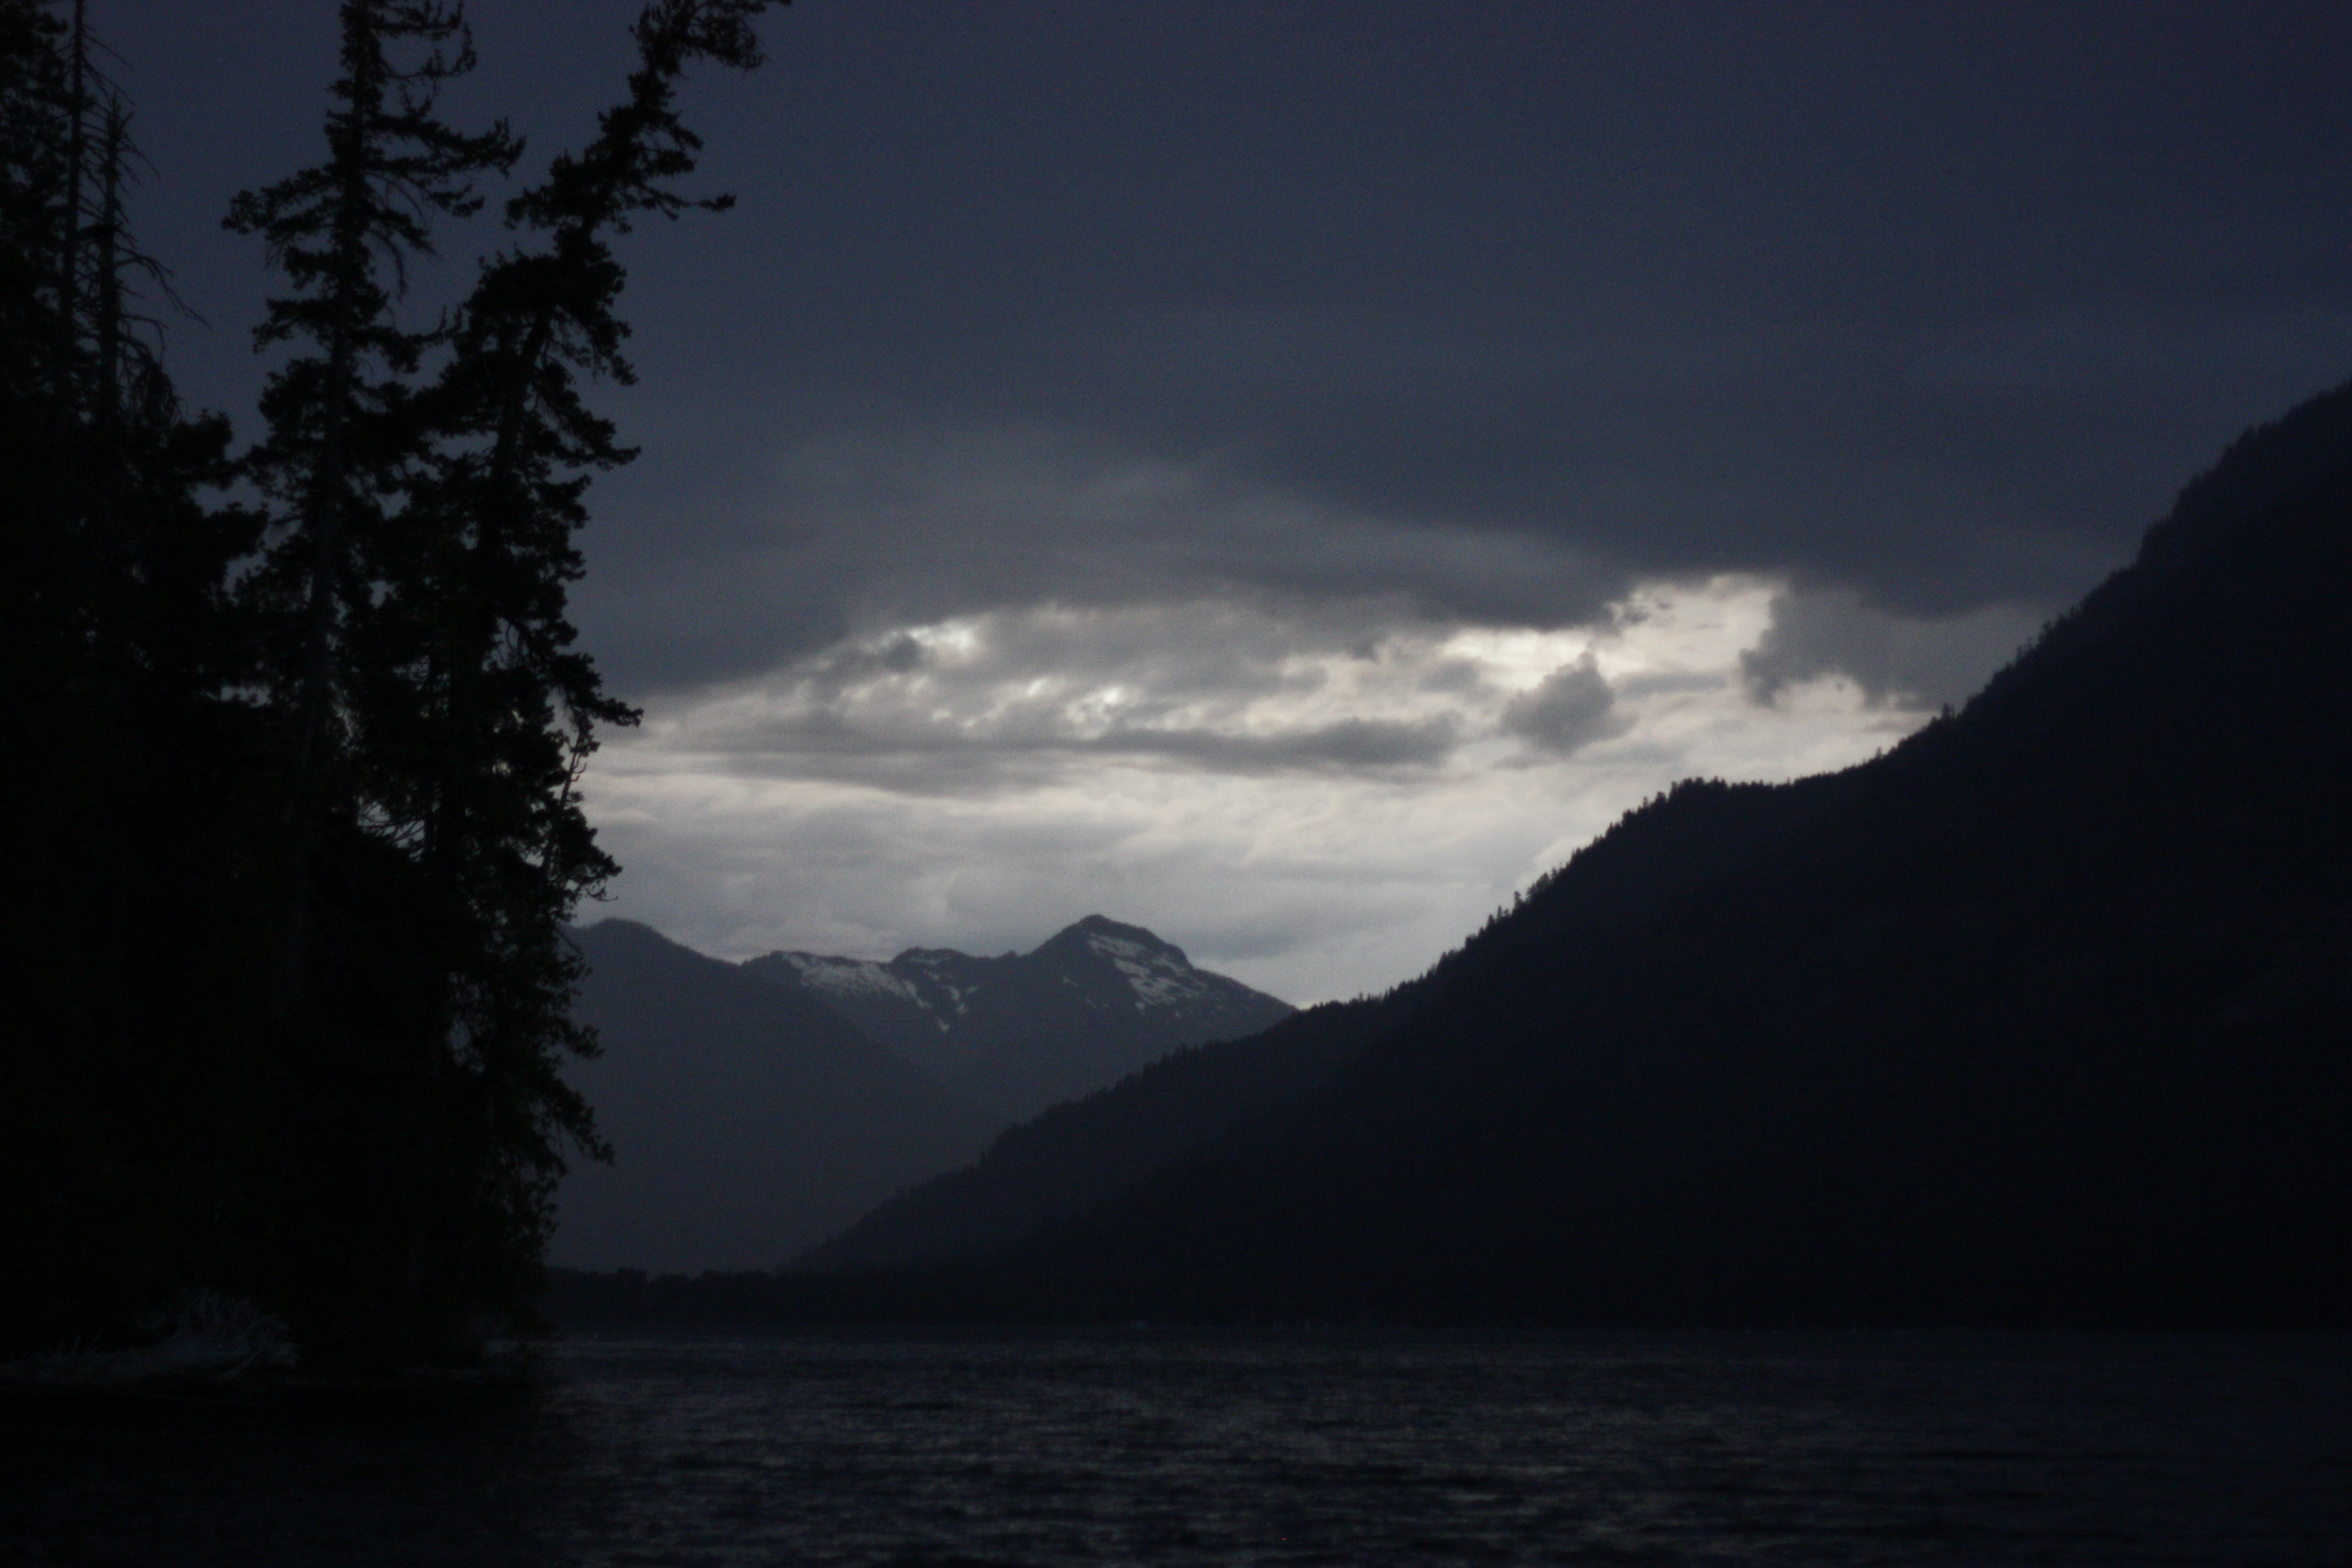 Free stock photo of dark clouds, forest, lake, mountains